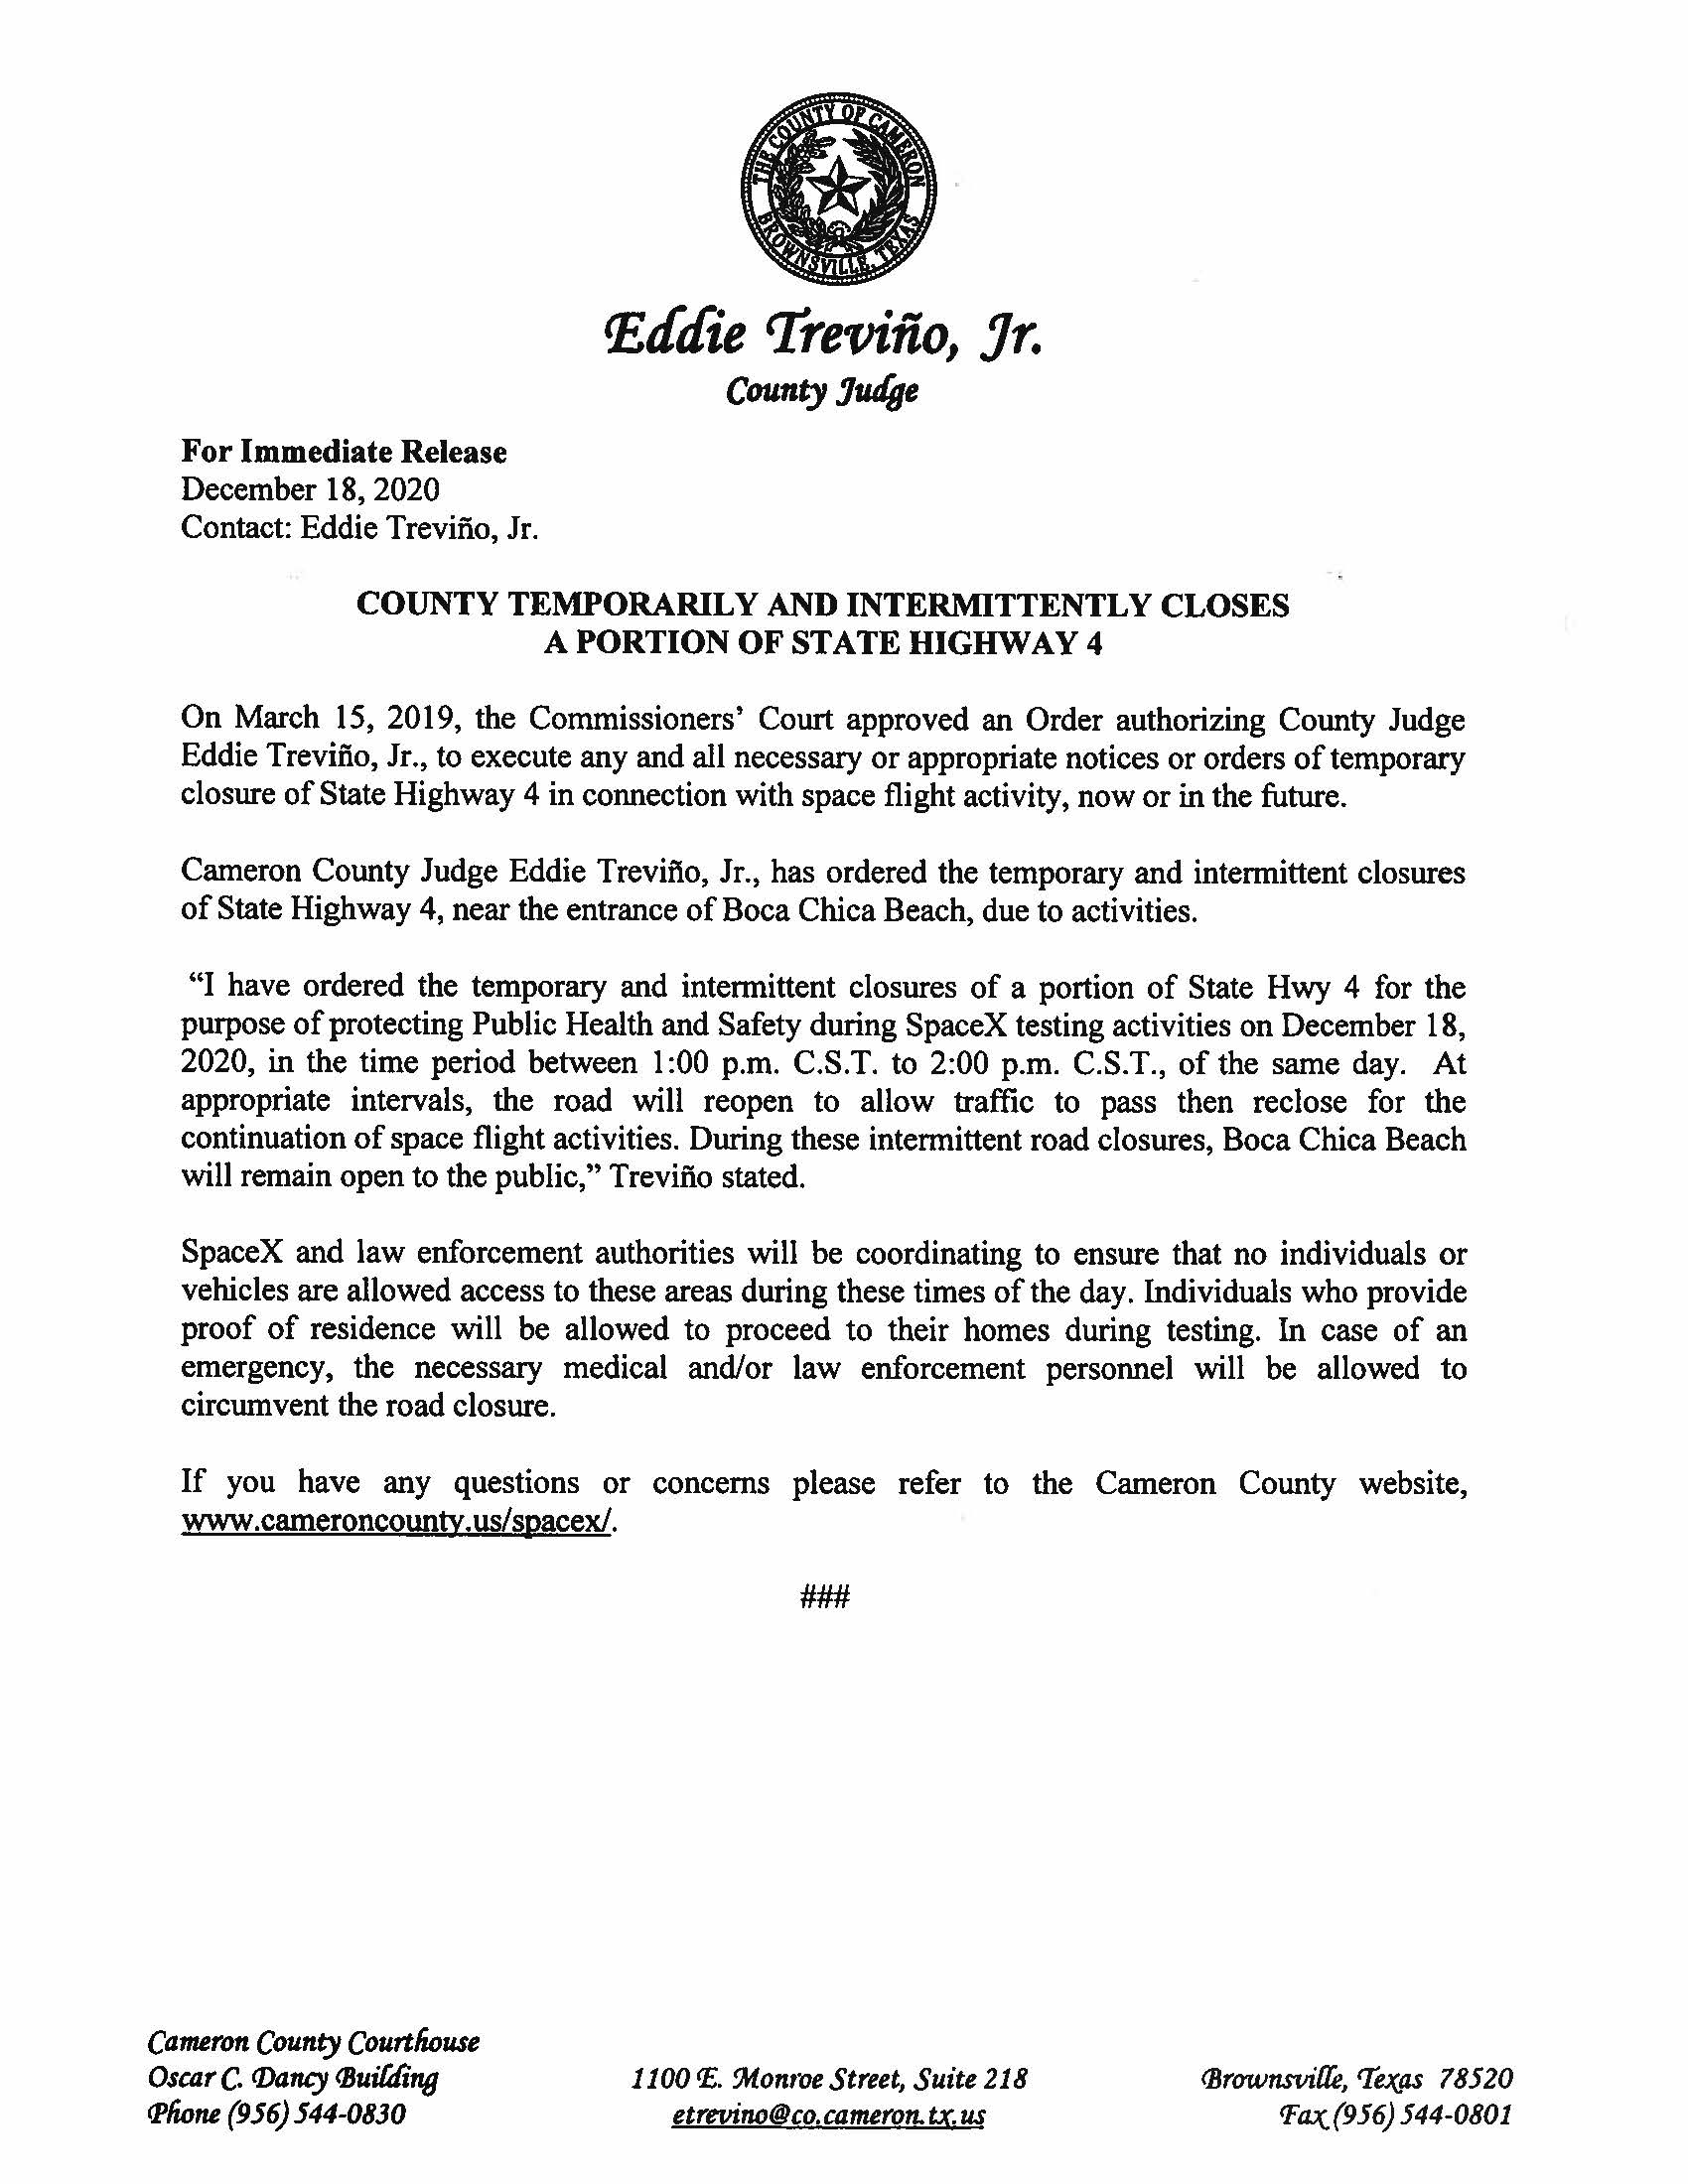 Press Release English And Spanish.12.18.20 Page 1 1